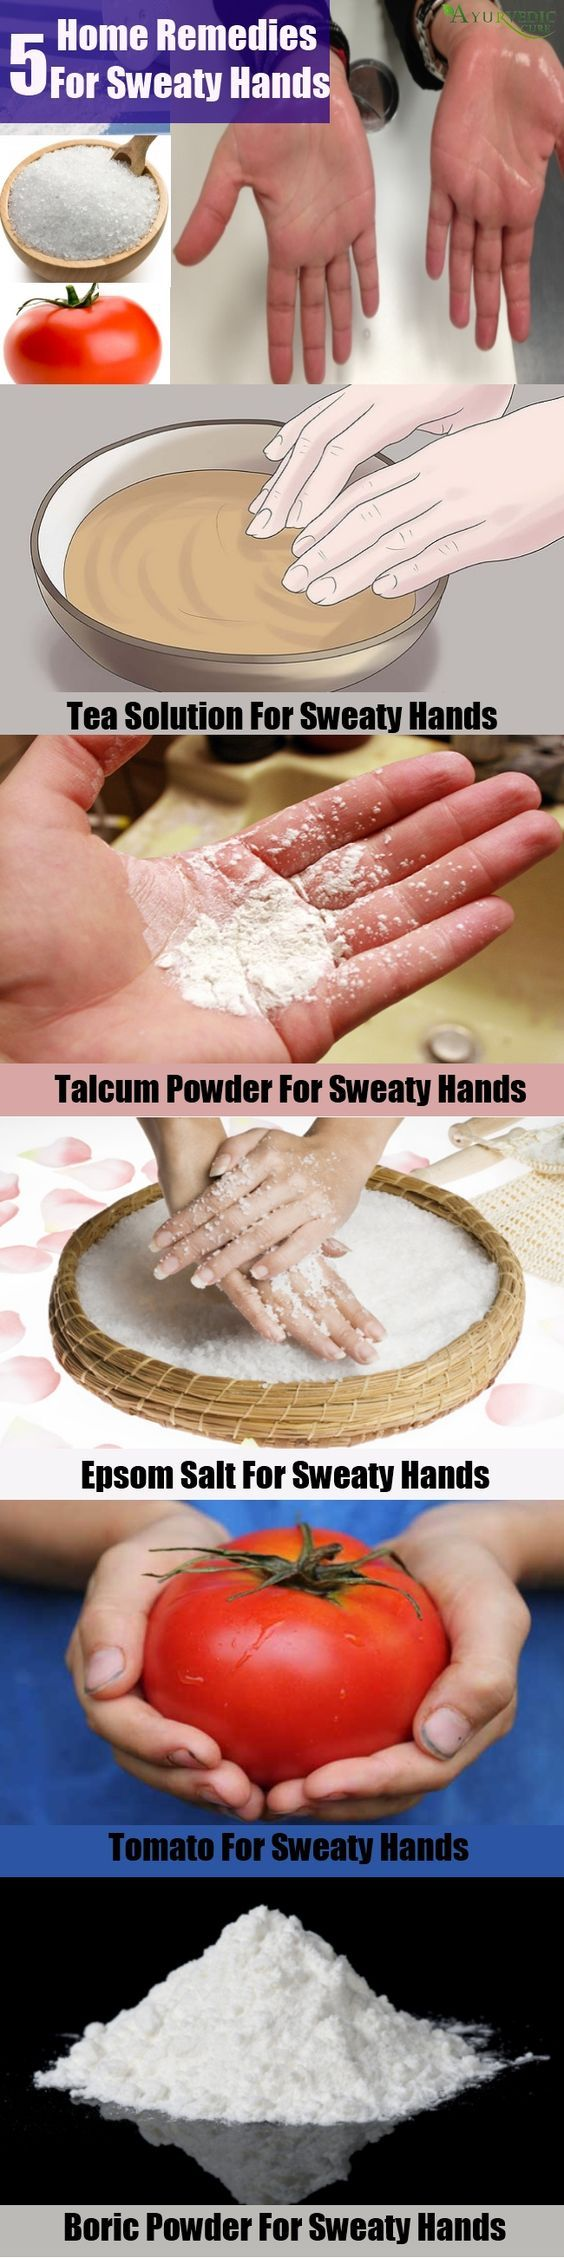 Palmar hyperhidrosis or sweaty hands can be treated with natural ingredients available at home. Herbs and vitamins present in food items are very effective in treating sweaty hands. Epsom salt present at home can be used effectively to treat sweaty hands. Proper diet is another important remedy which you should never ignore.